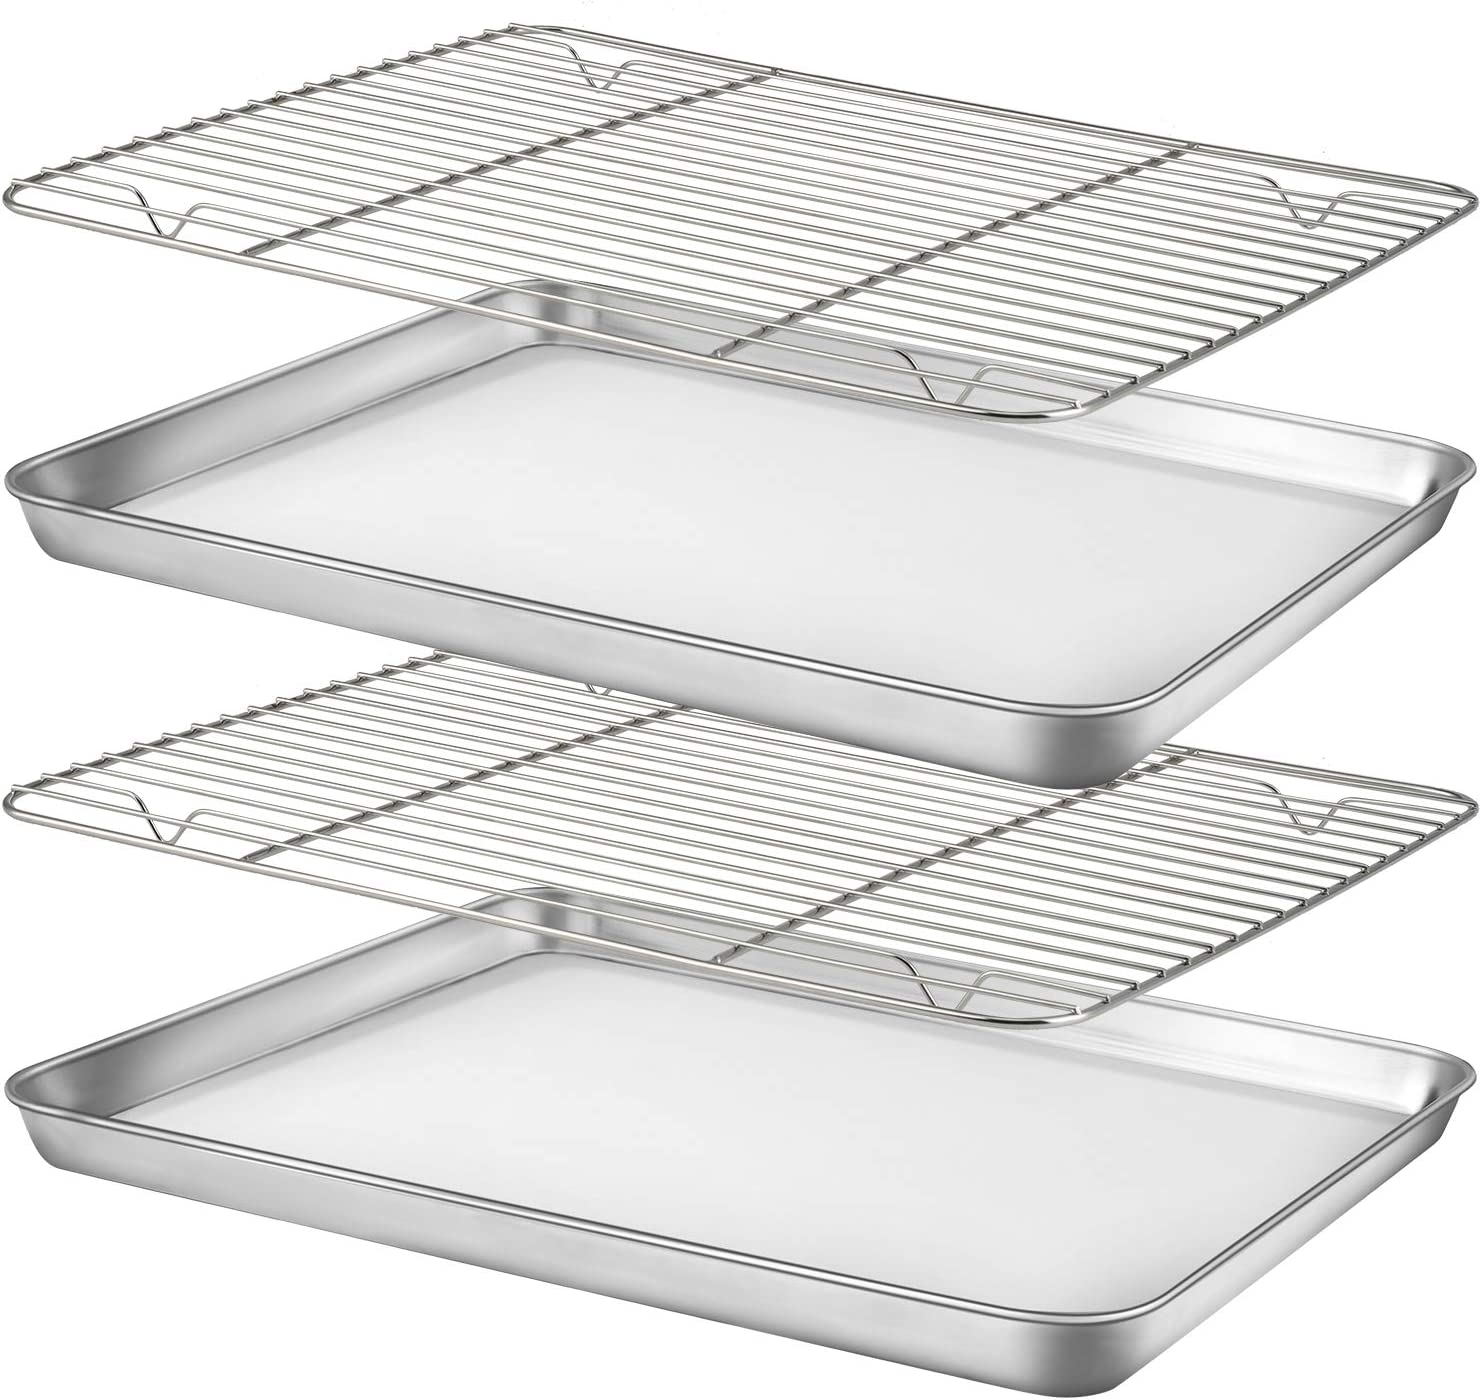 "Baking Sheet with Cooling Rack Set [2 Sheets+2 Racks], Nonstick Cookie Pan(16"" x 12"" x 1"" ), Stainless Steel Baking Pans, Non-Toxic, Heavy Duty, Easy Clean: Kitchen & Dining"